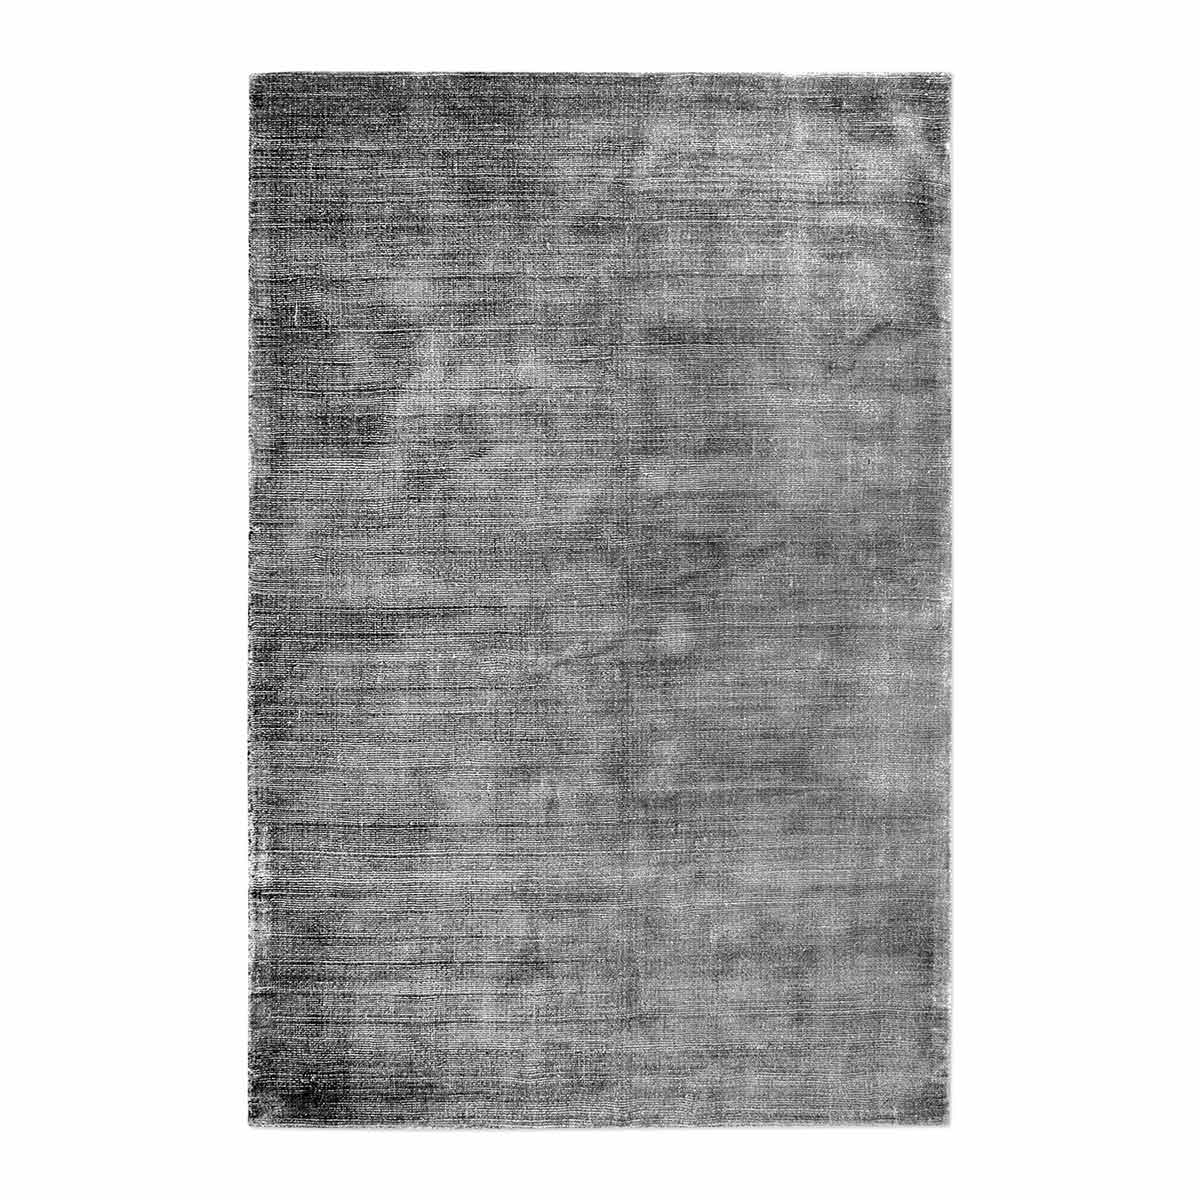 Uttermost Messini 9 x 12 Rug - Taupe